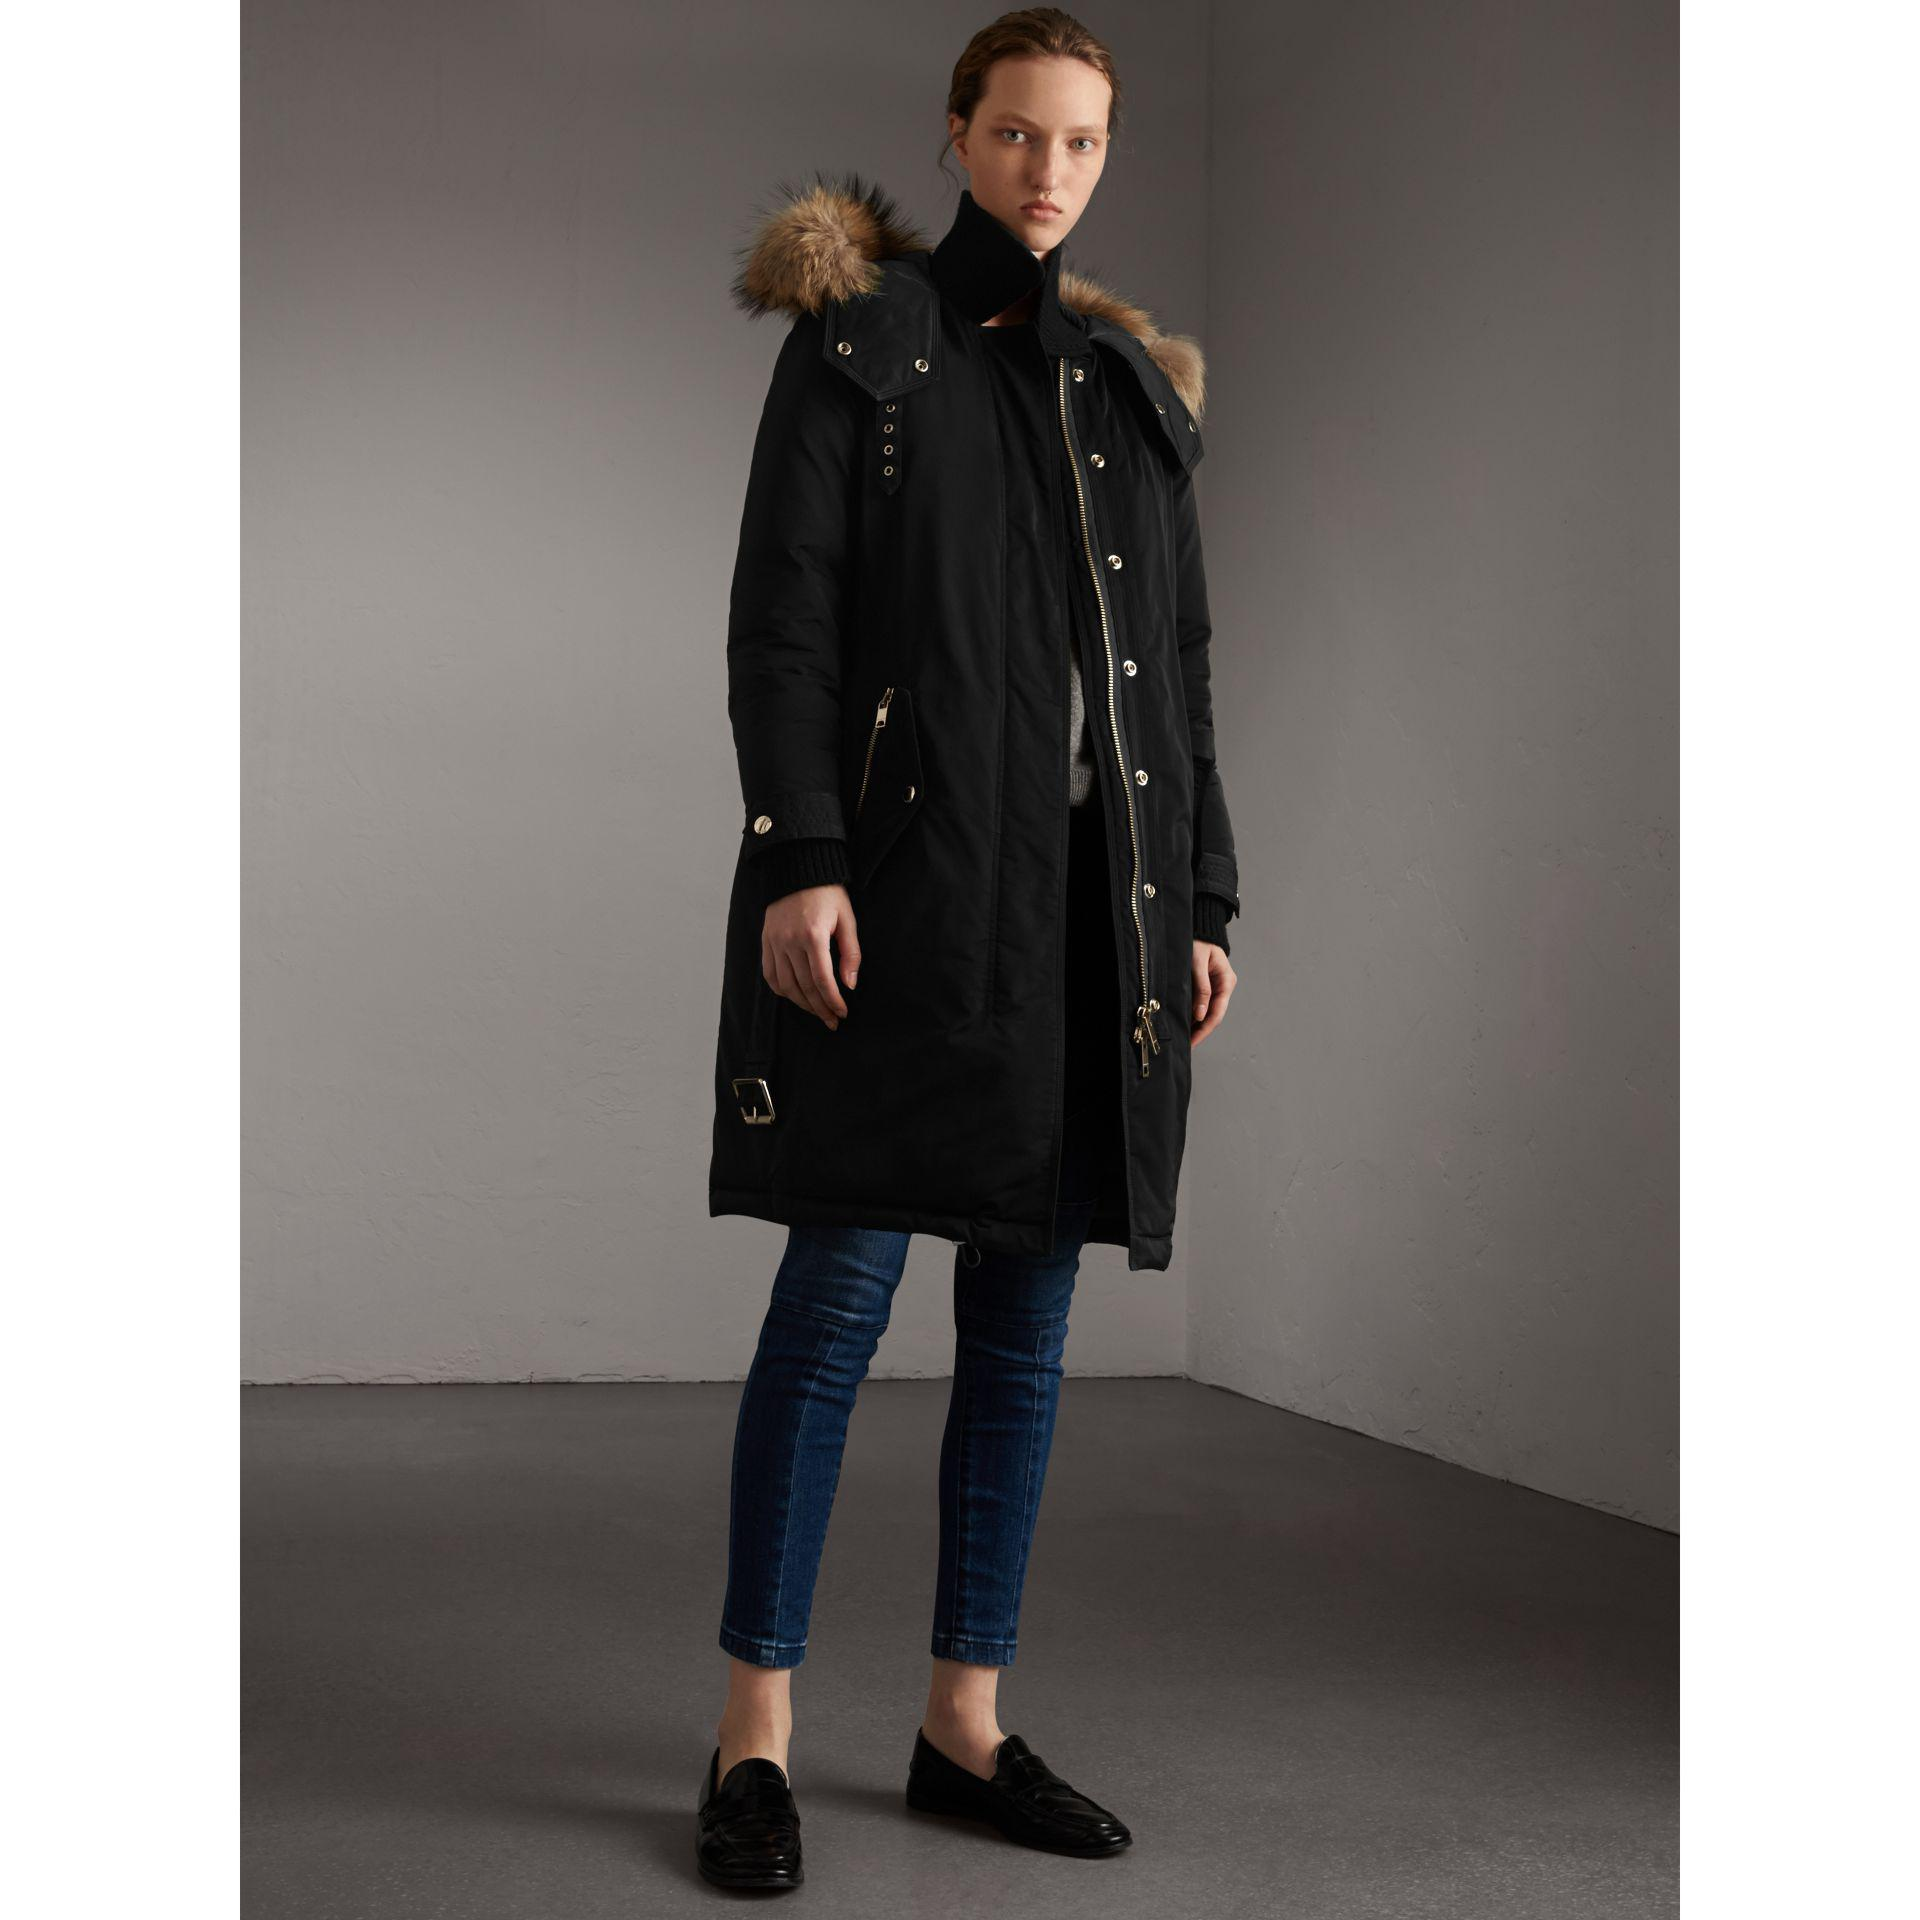 7a2240be78a5 Lyst - Burberry Down-filled Parka Coat With Detachable Fur Trim ...